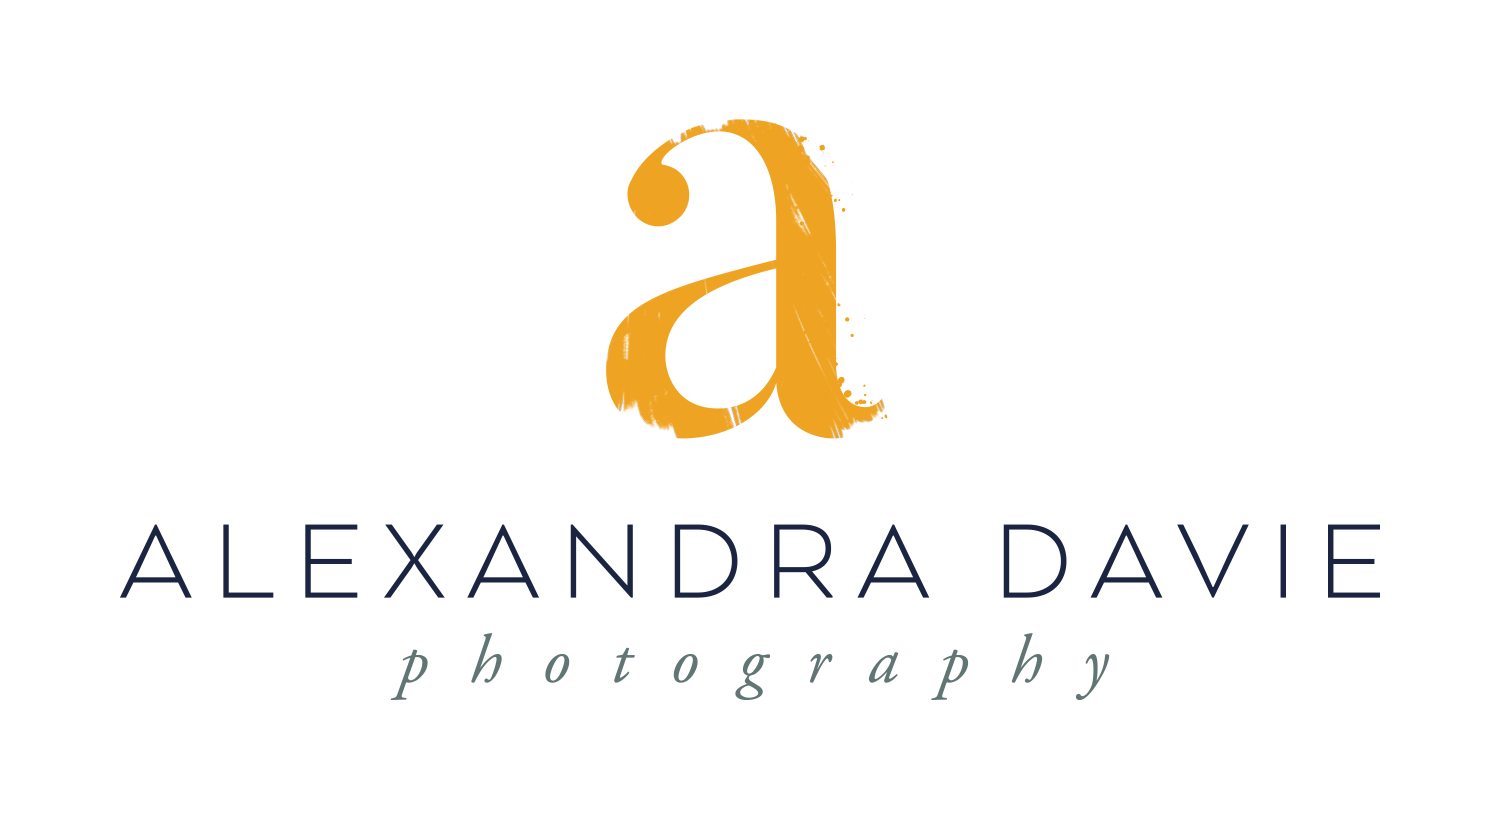 Alexandra Davie Photography